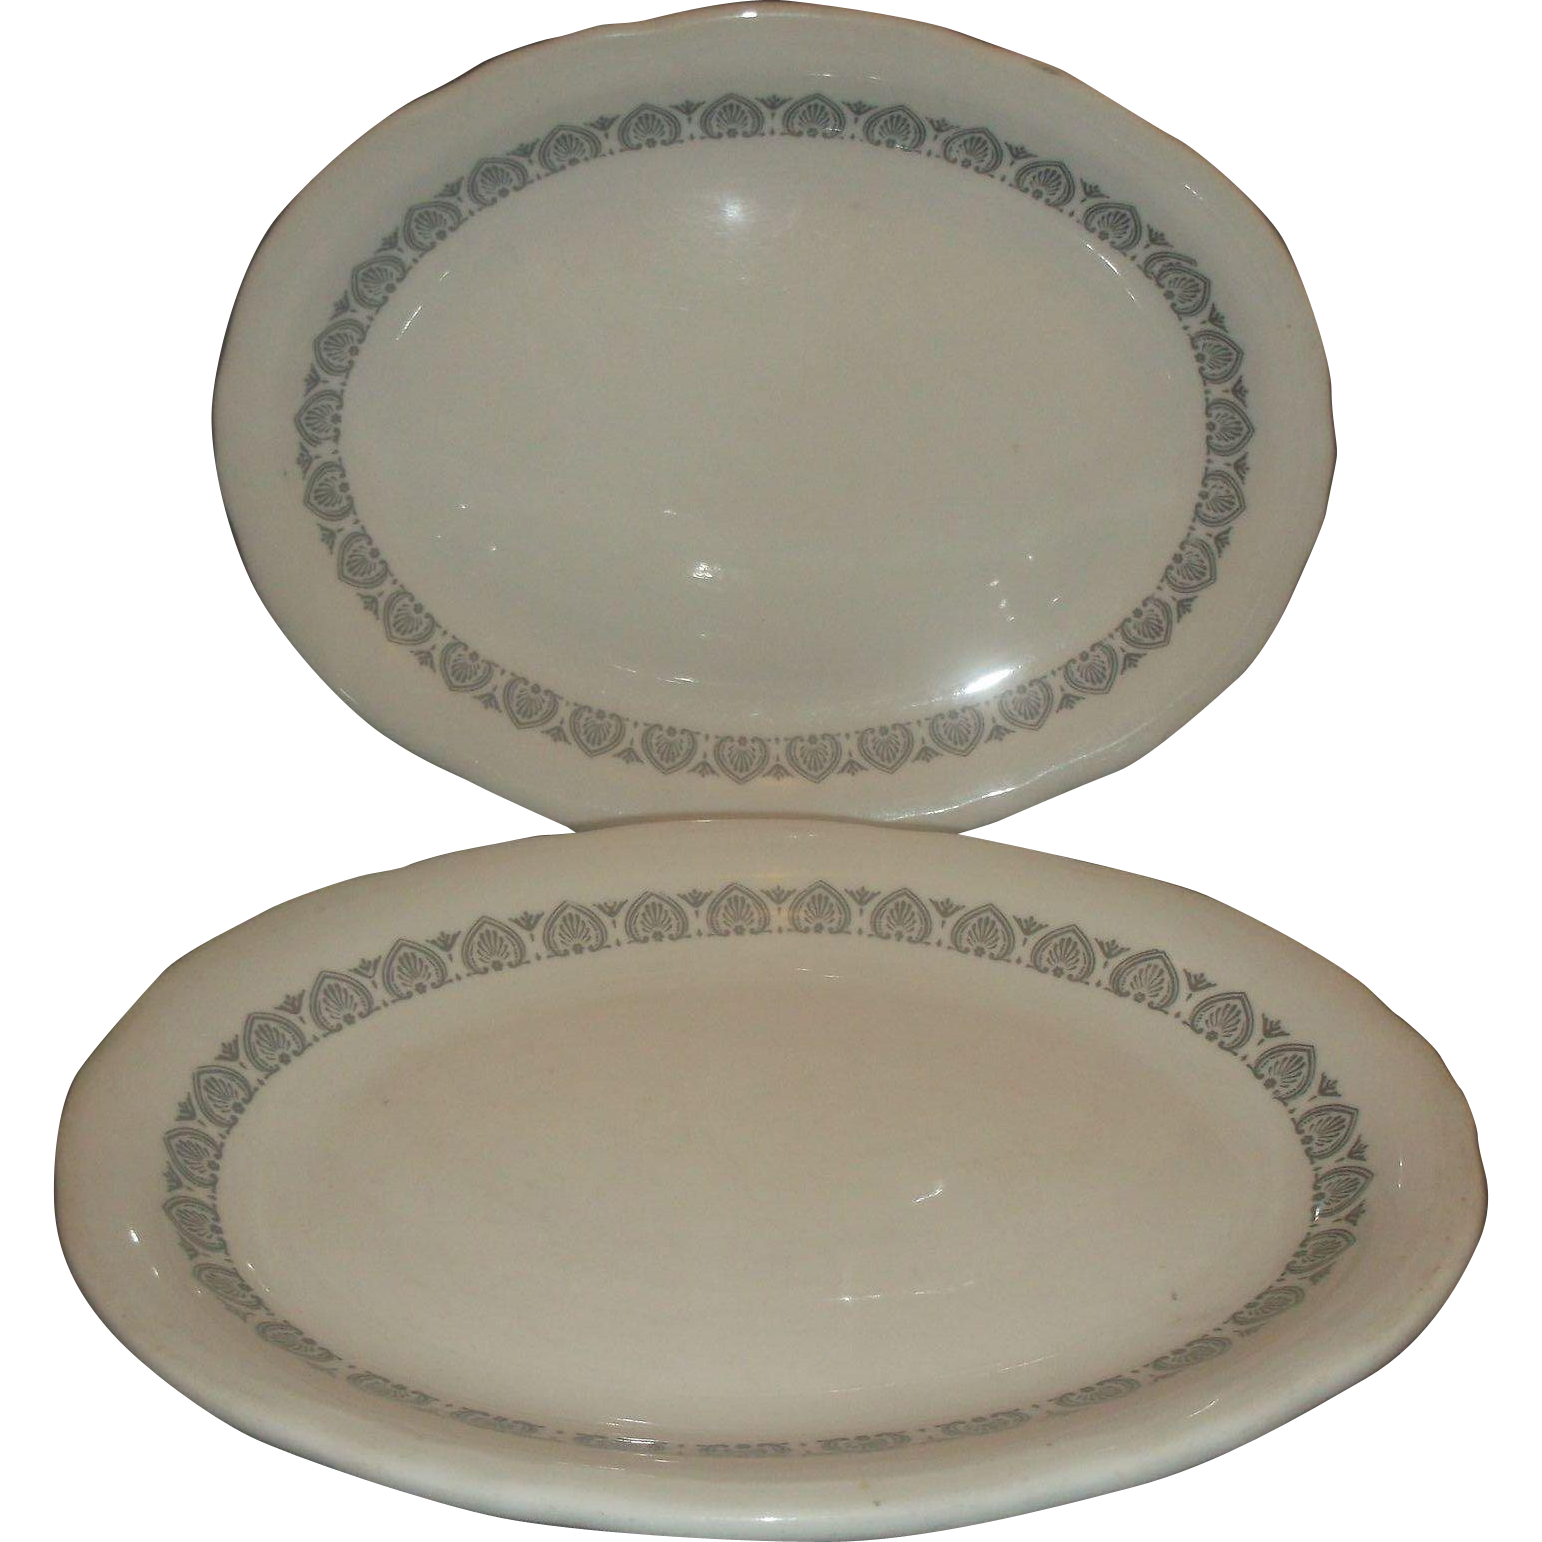 Shenango Restaurant Ware Black Seashell Scroll Pattern White Oval Plates Pair